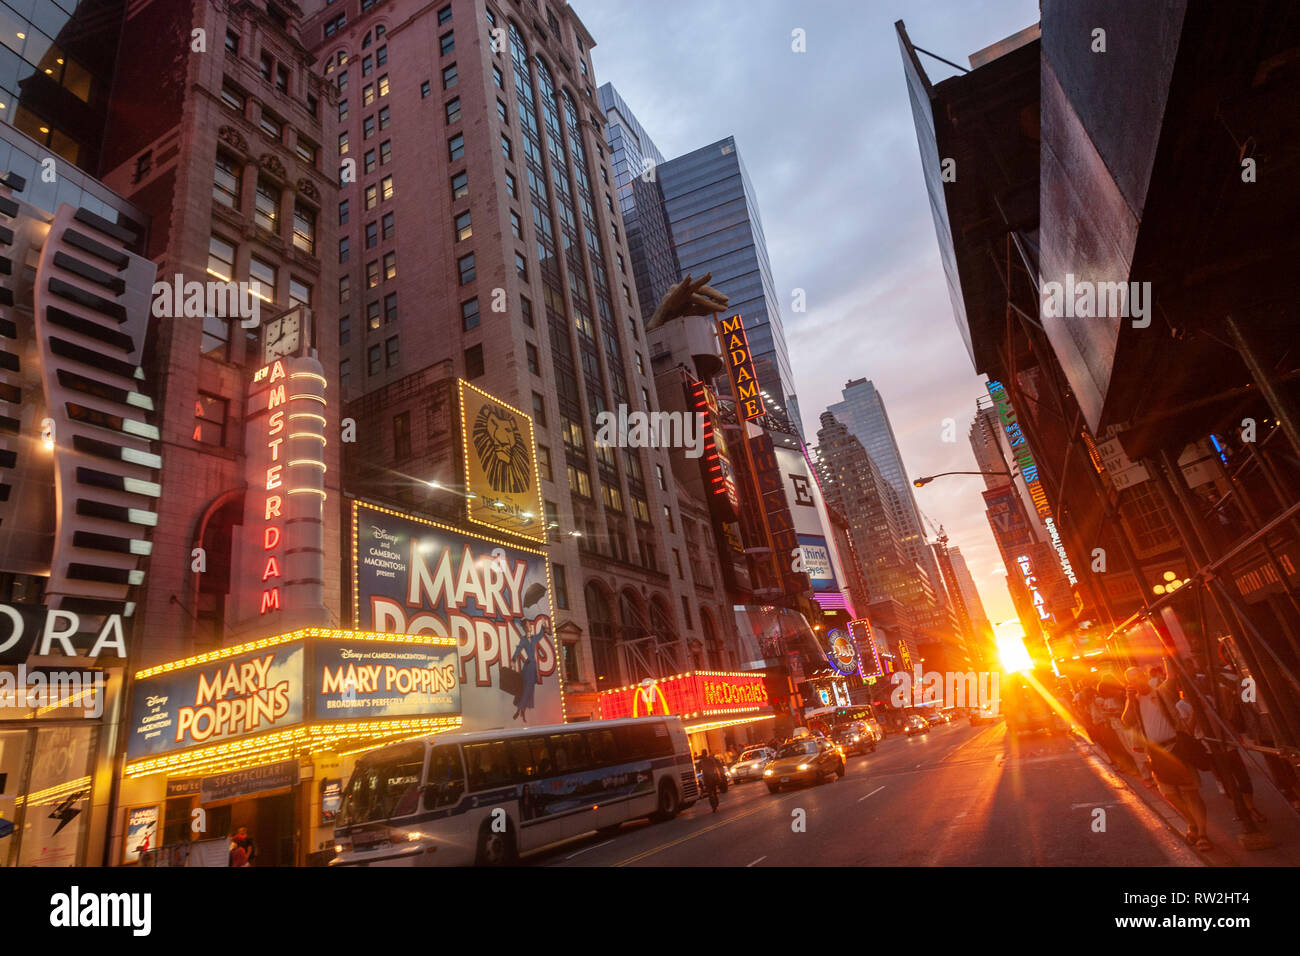 New Amsterdam Theatre in W 42nd St at sunset near Times Sq, Manhattan, New York City, USA - Stock Image